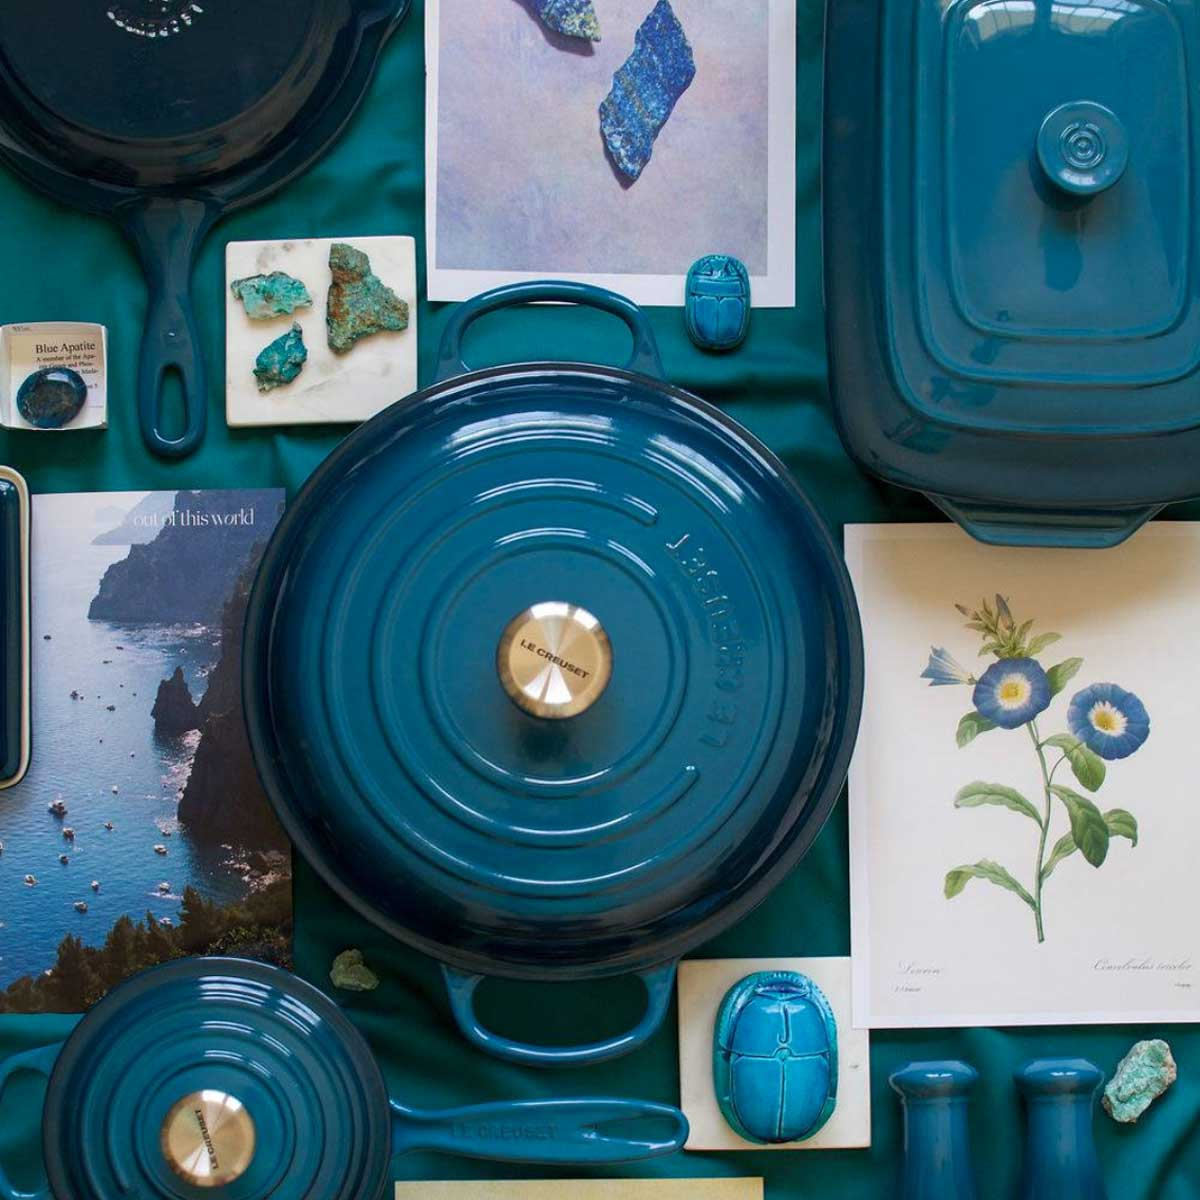 Le Creuset 5-Piece Signature Set photo shot from above.